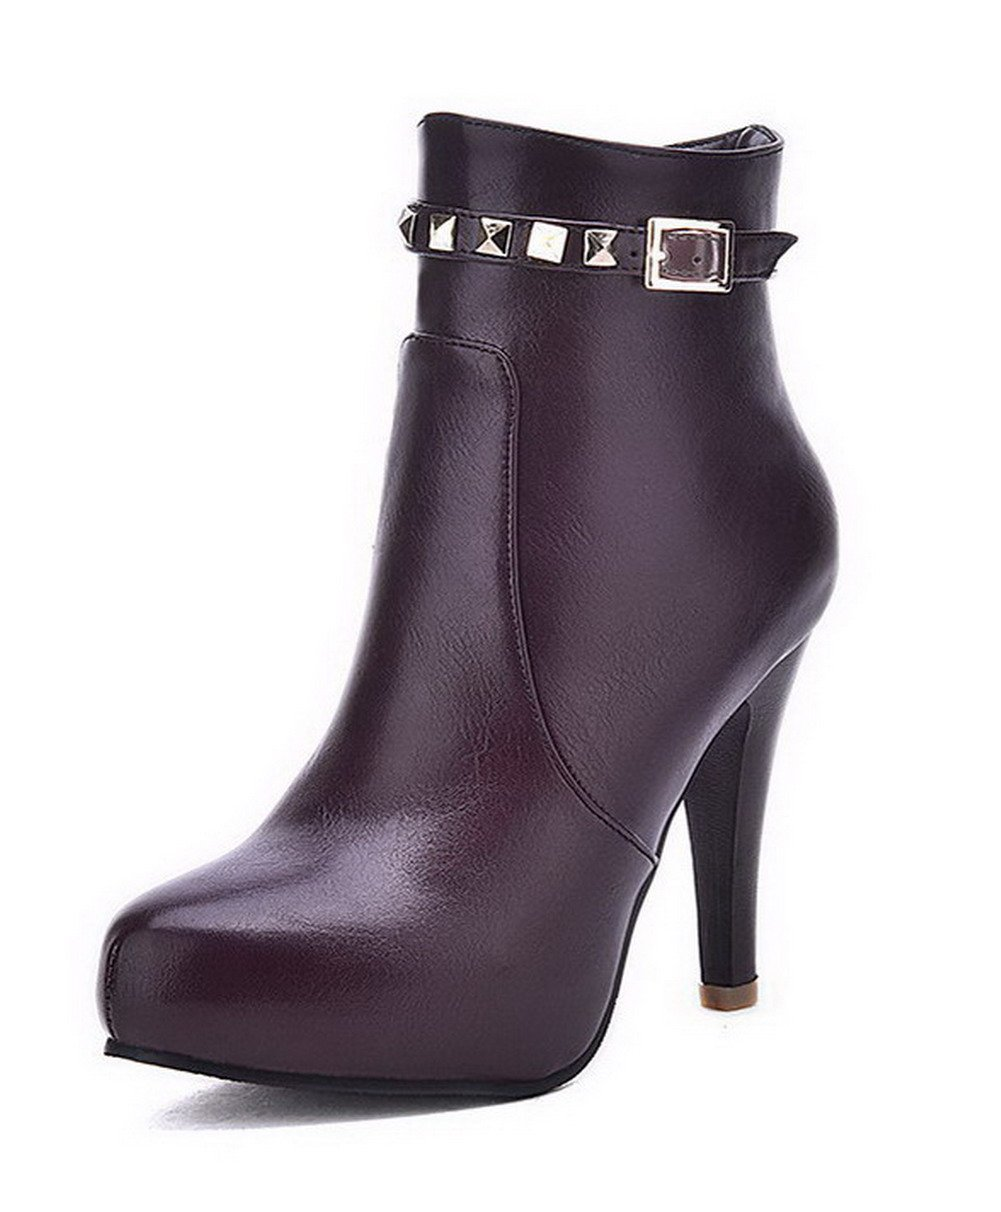 AllhqFashion Women's High-Heels Soft Material Low-Top Solid Zipper Boots with Rivet, Purple, 41